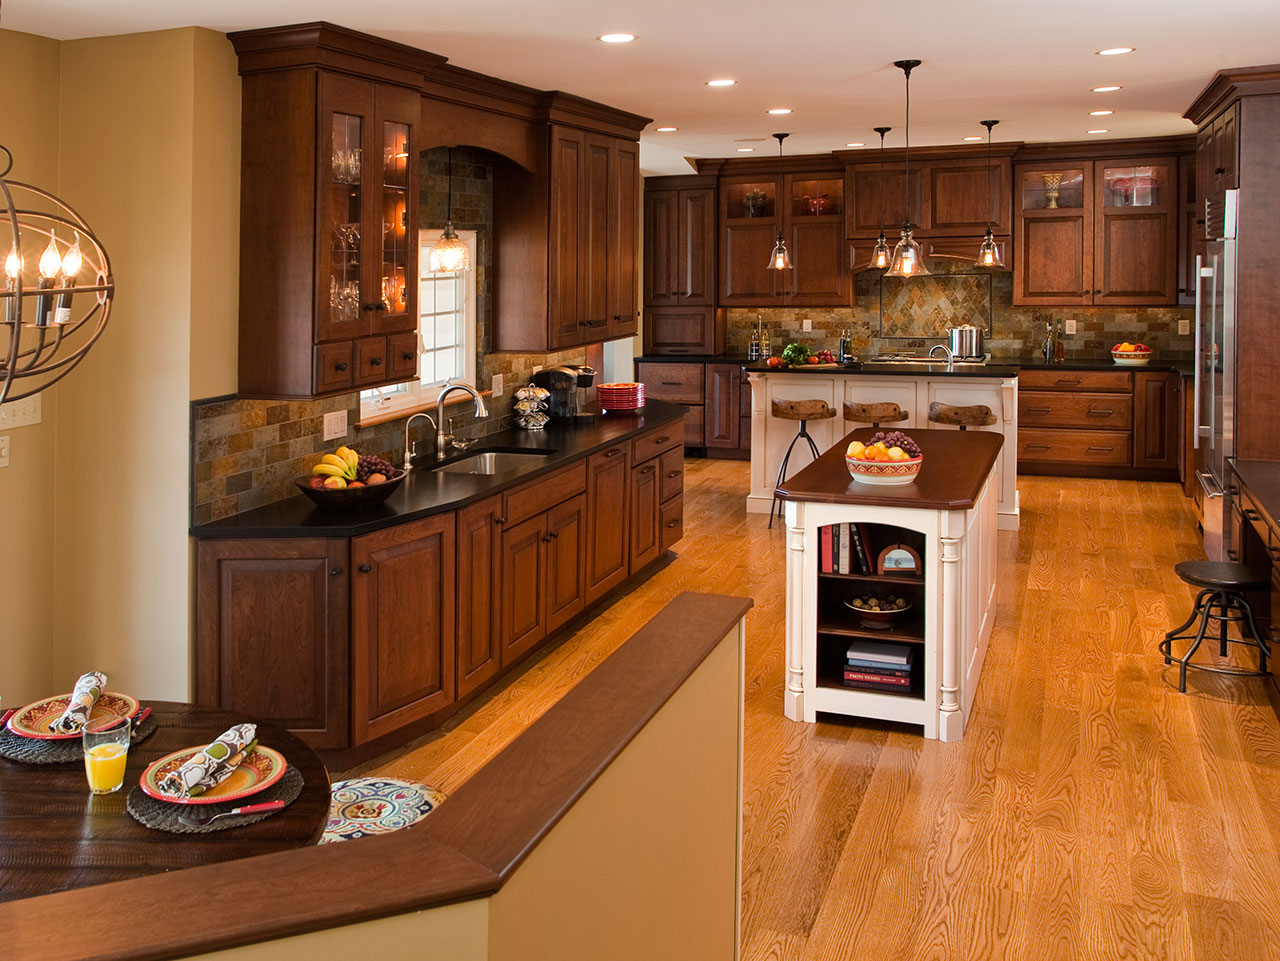 Kitchen Cabinets With Black Trim Traditional Kitchens Designs And Remodeling Htrenovations